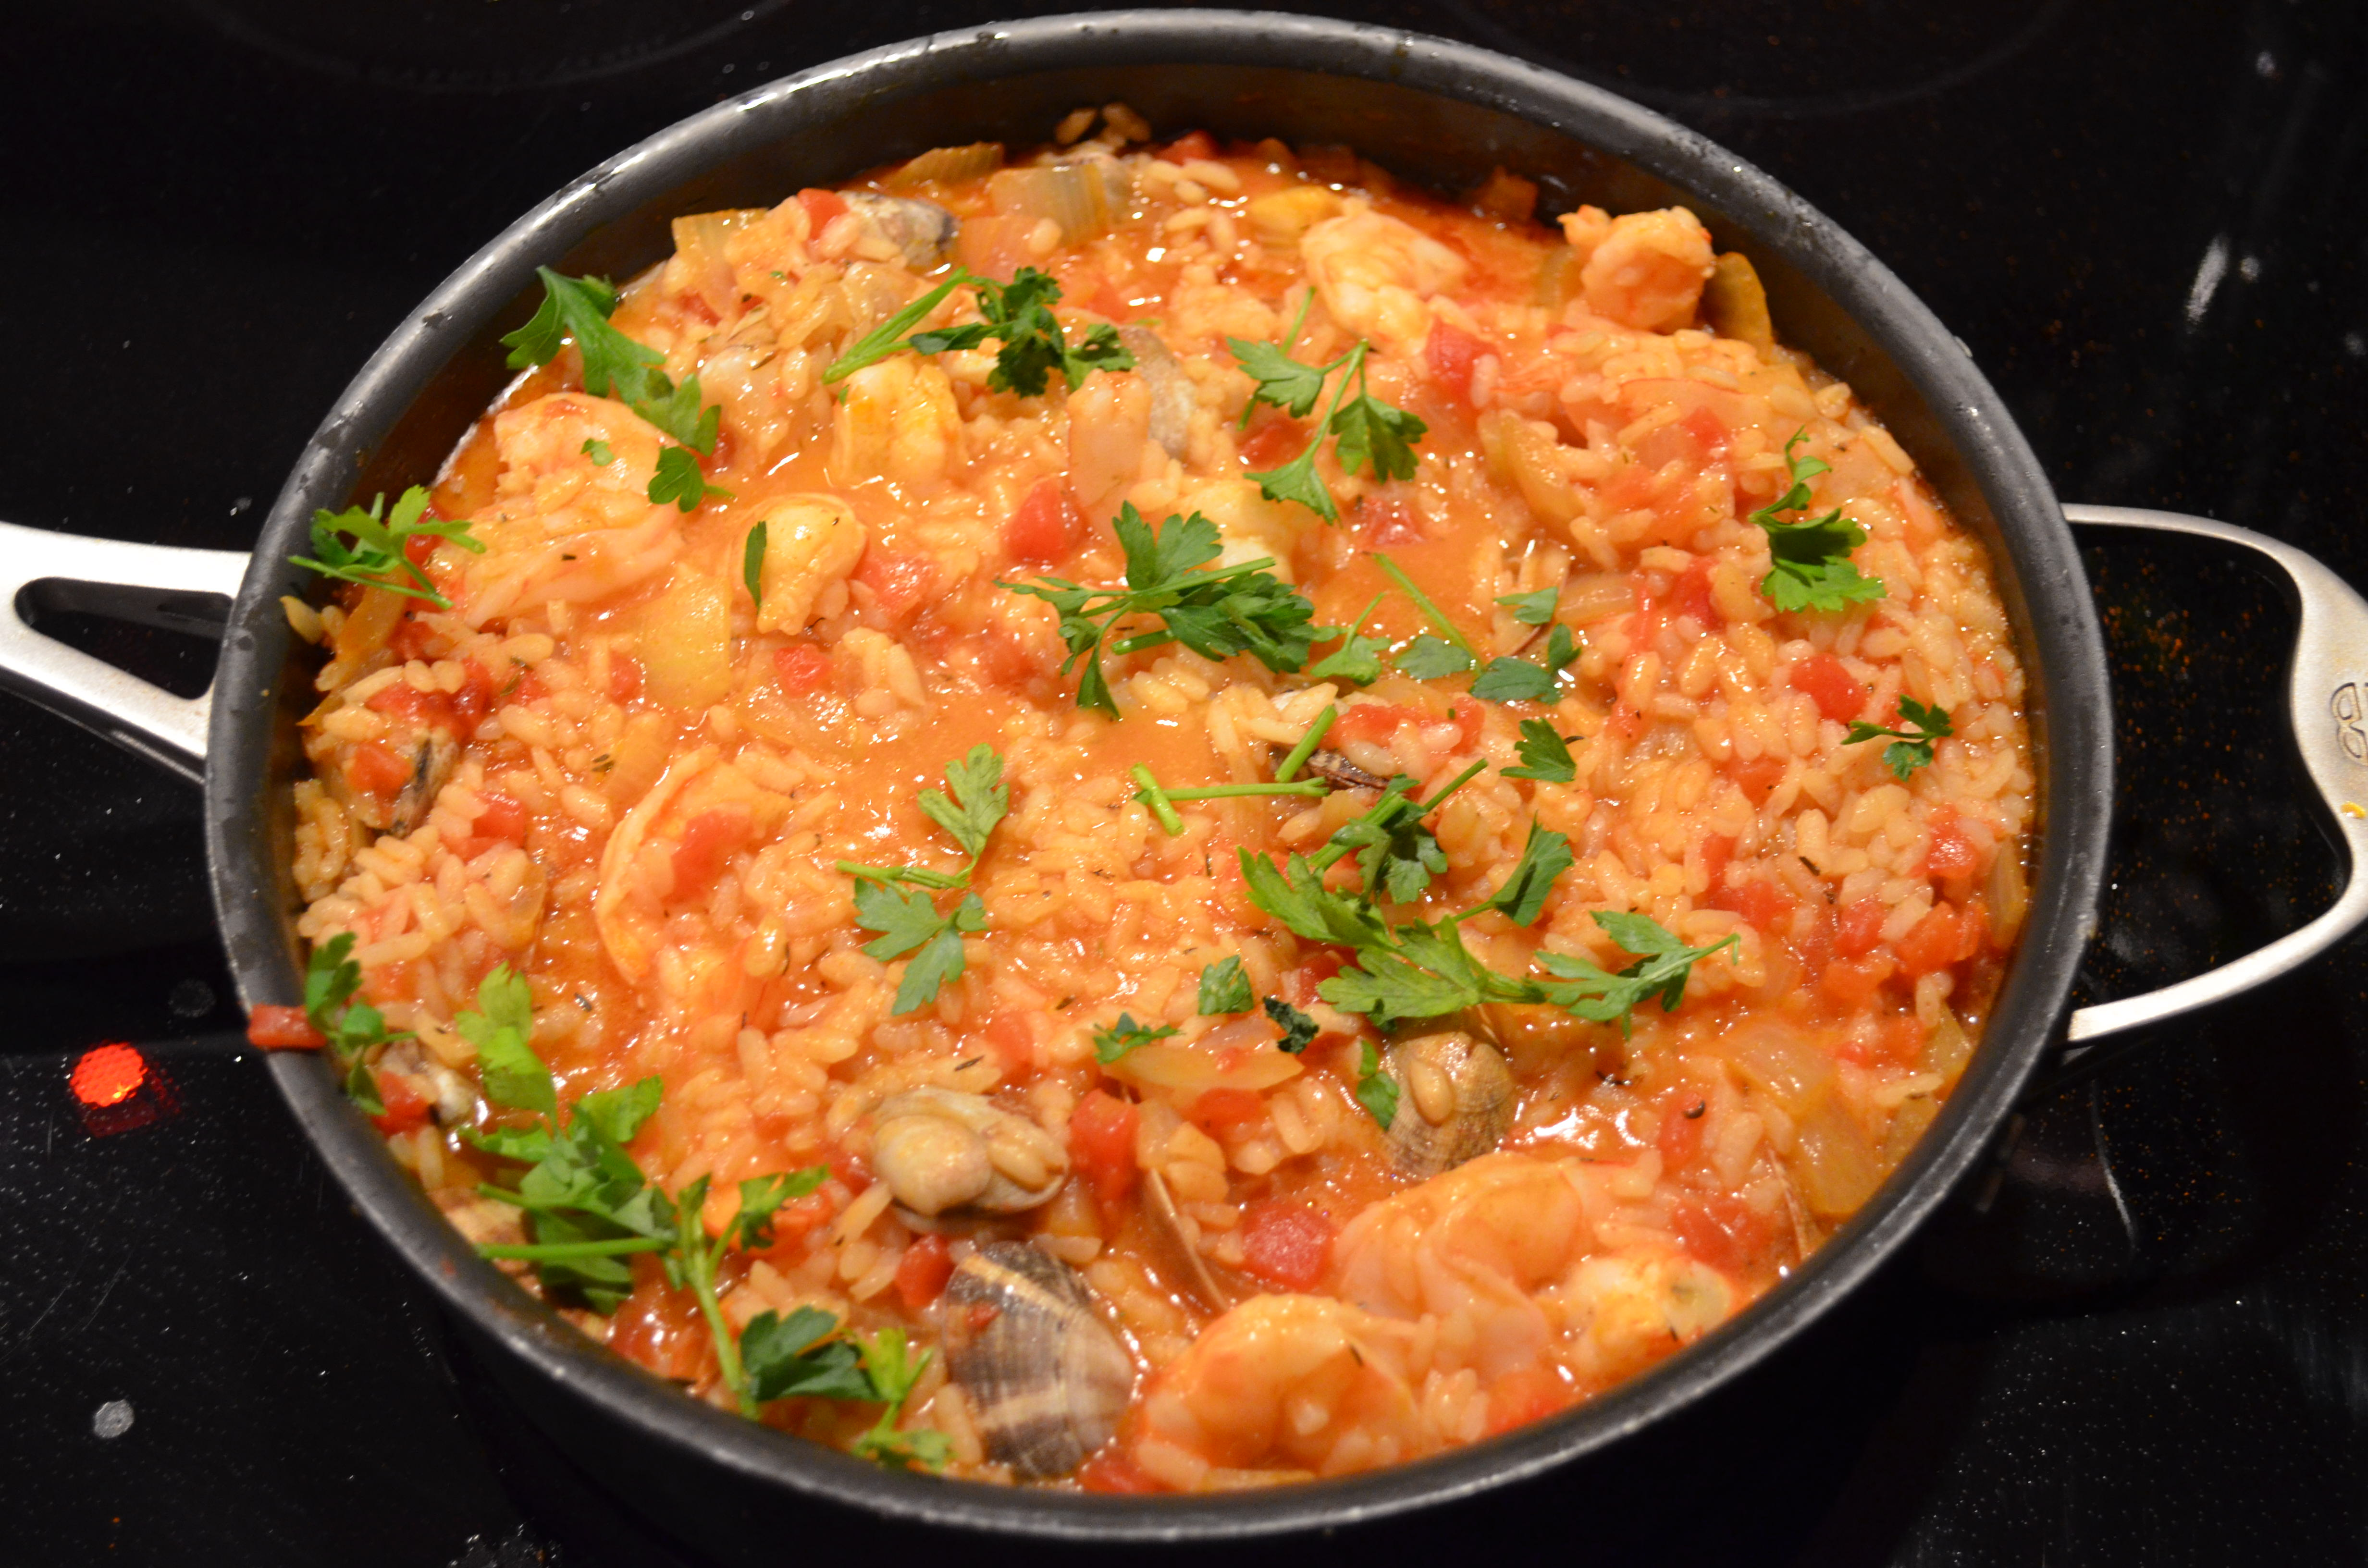 Easy paella i sing in the kitchen recipe from bbc good food magazine forumfinder Choice Image